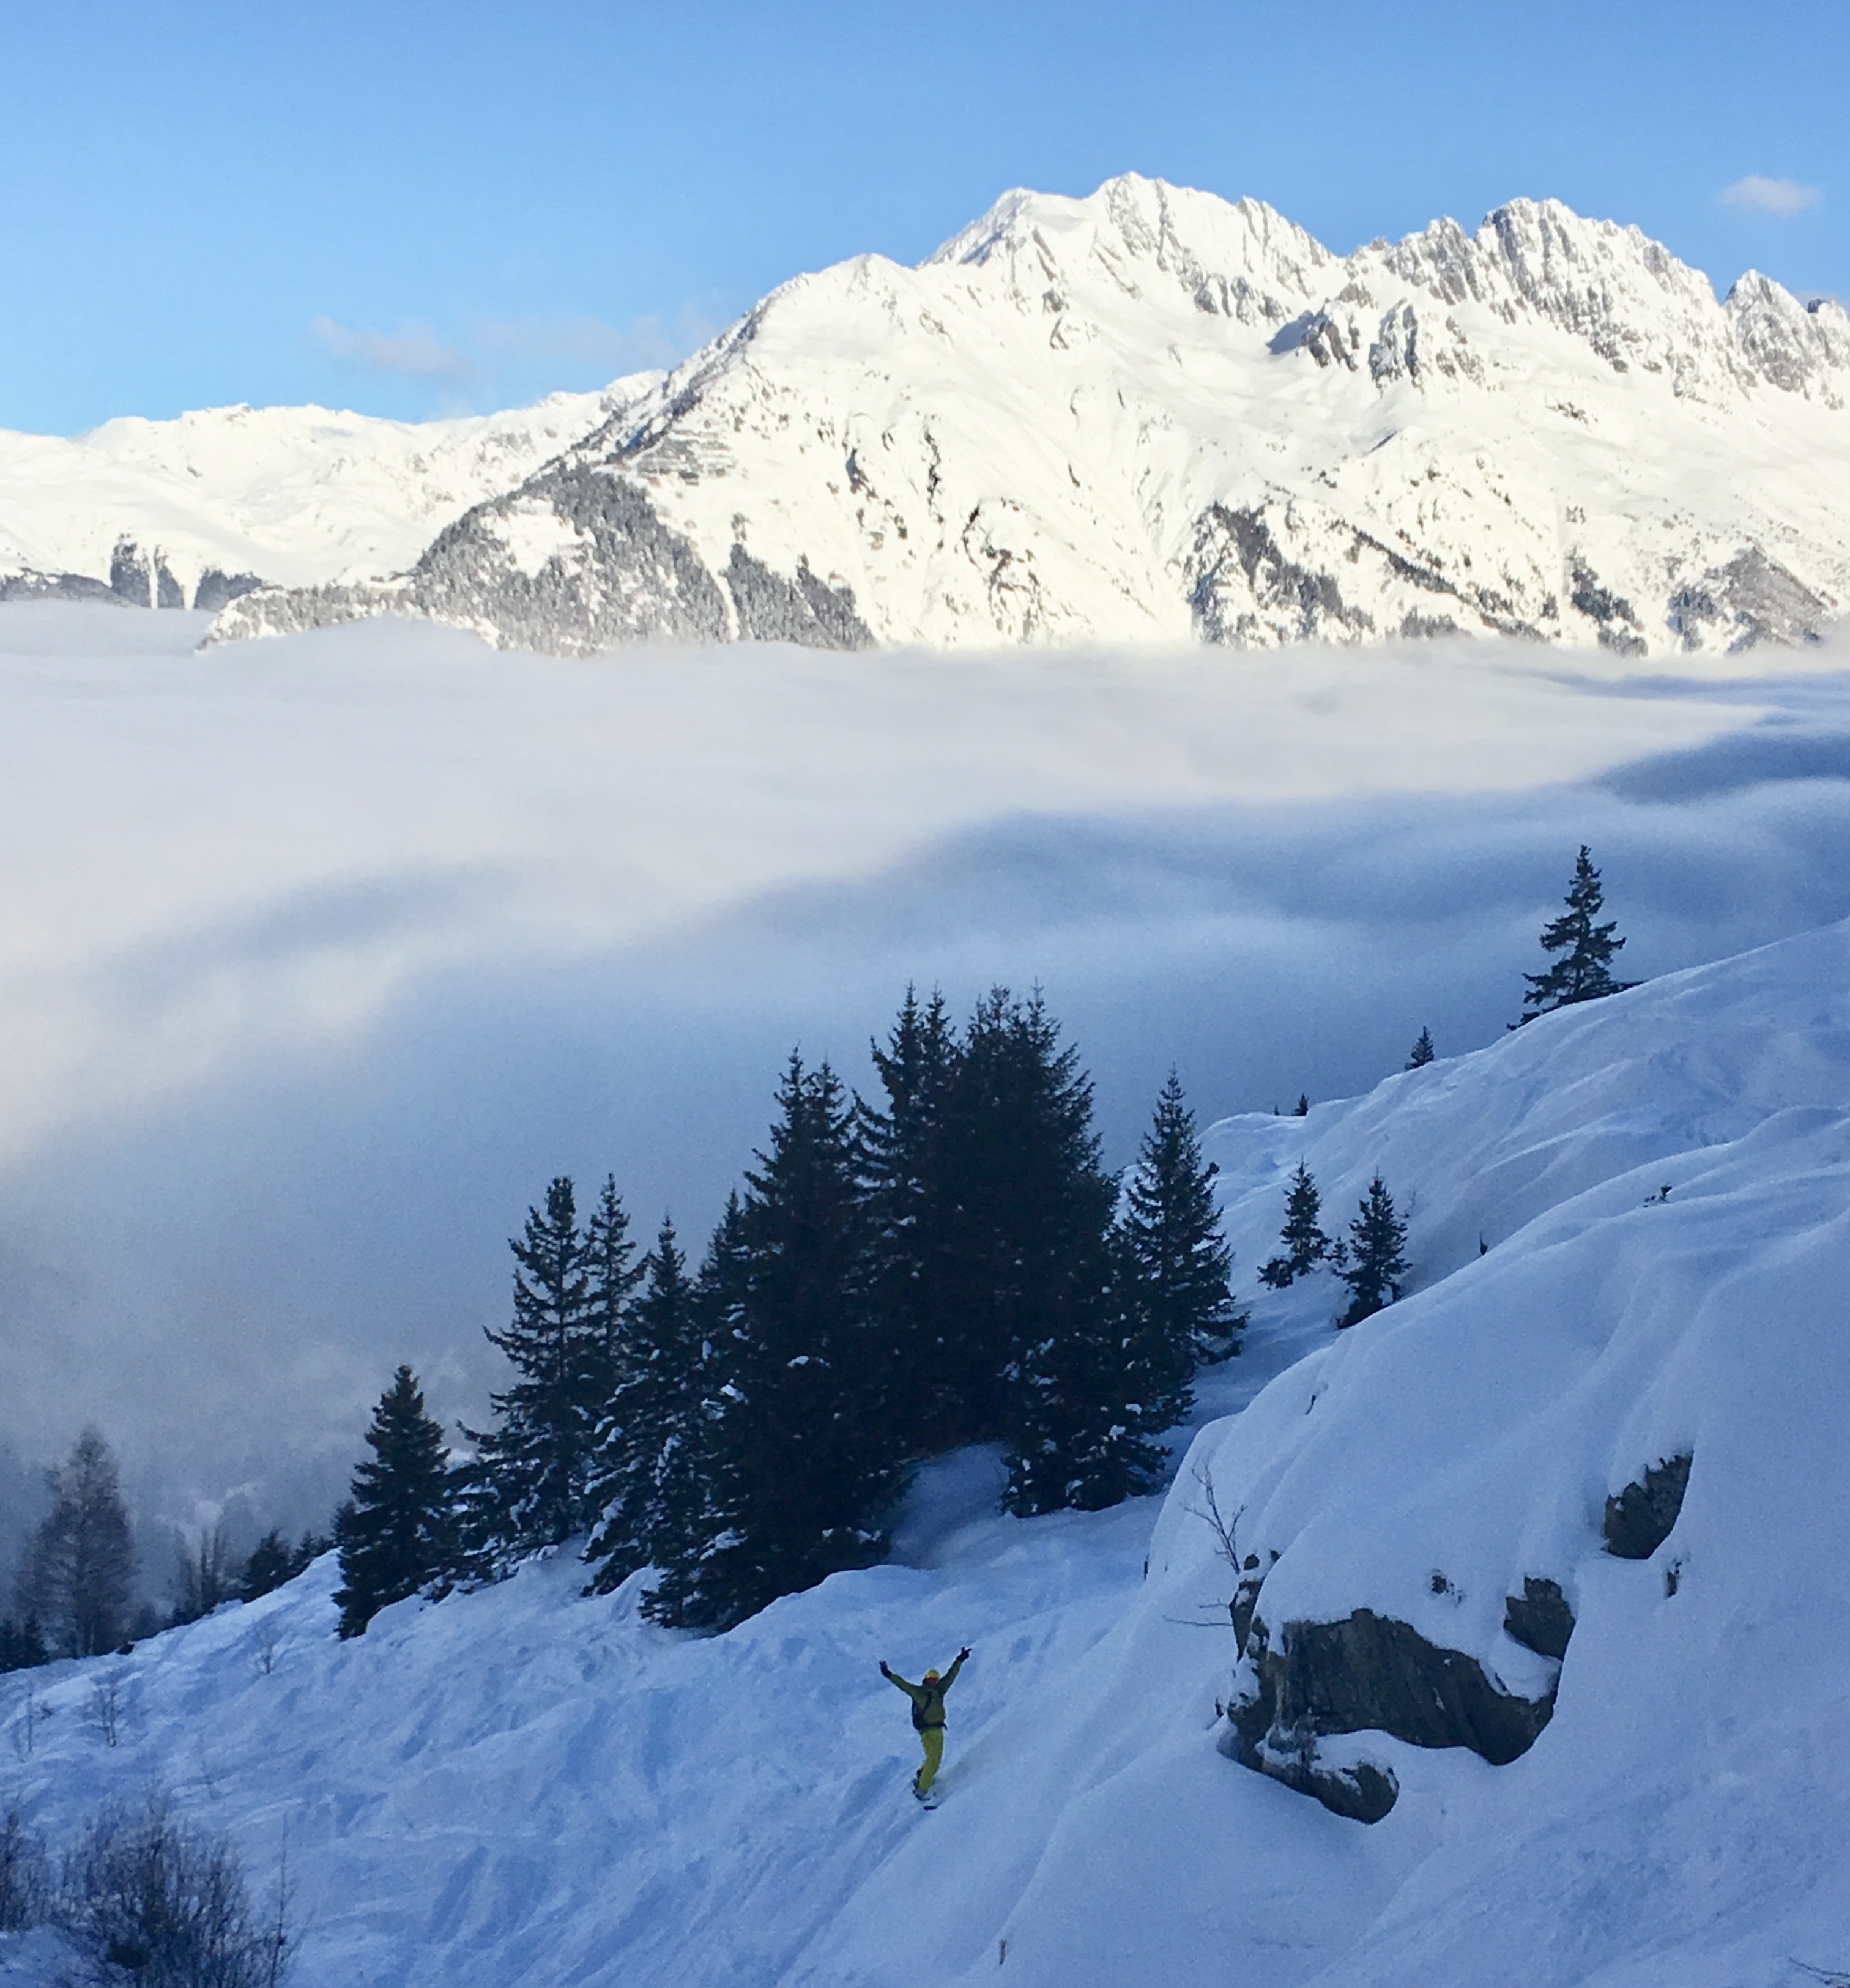 Inversion over Oz en Oisans